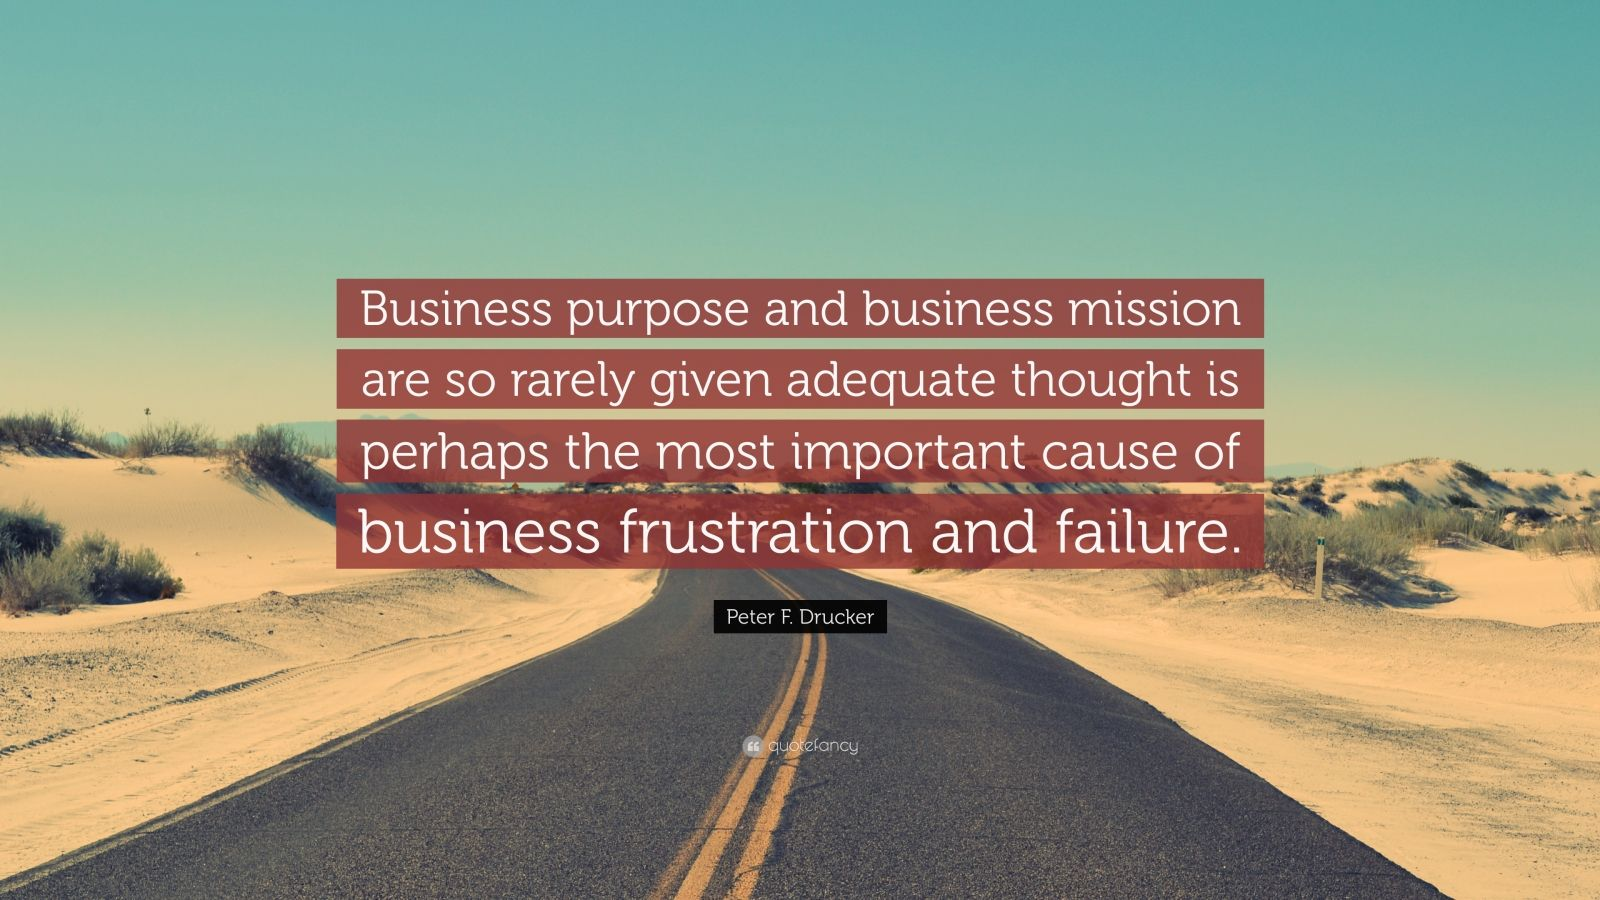 """Peter F. Drucker Quote: """"Business purpose and business mission are so rarely given adequate thought is perhaps the most important cause of business frustration and failure."""""""